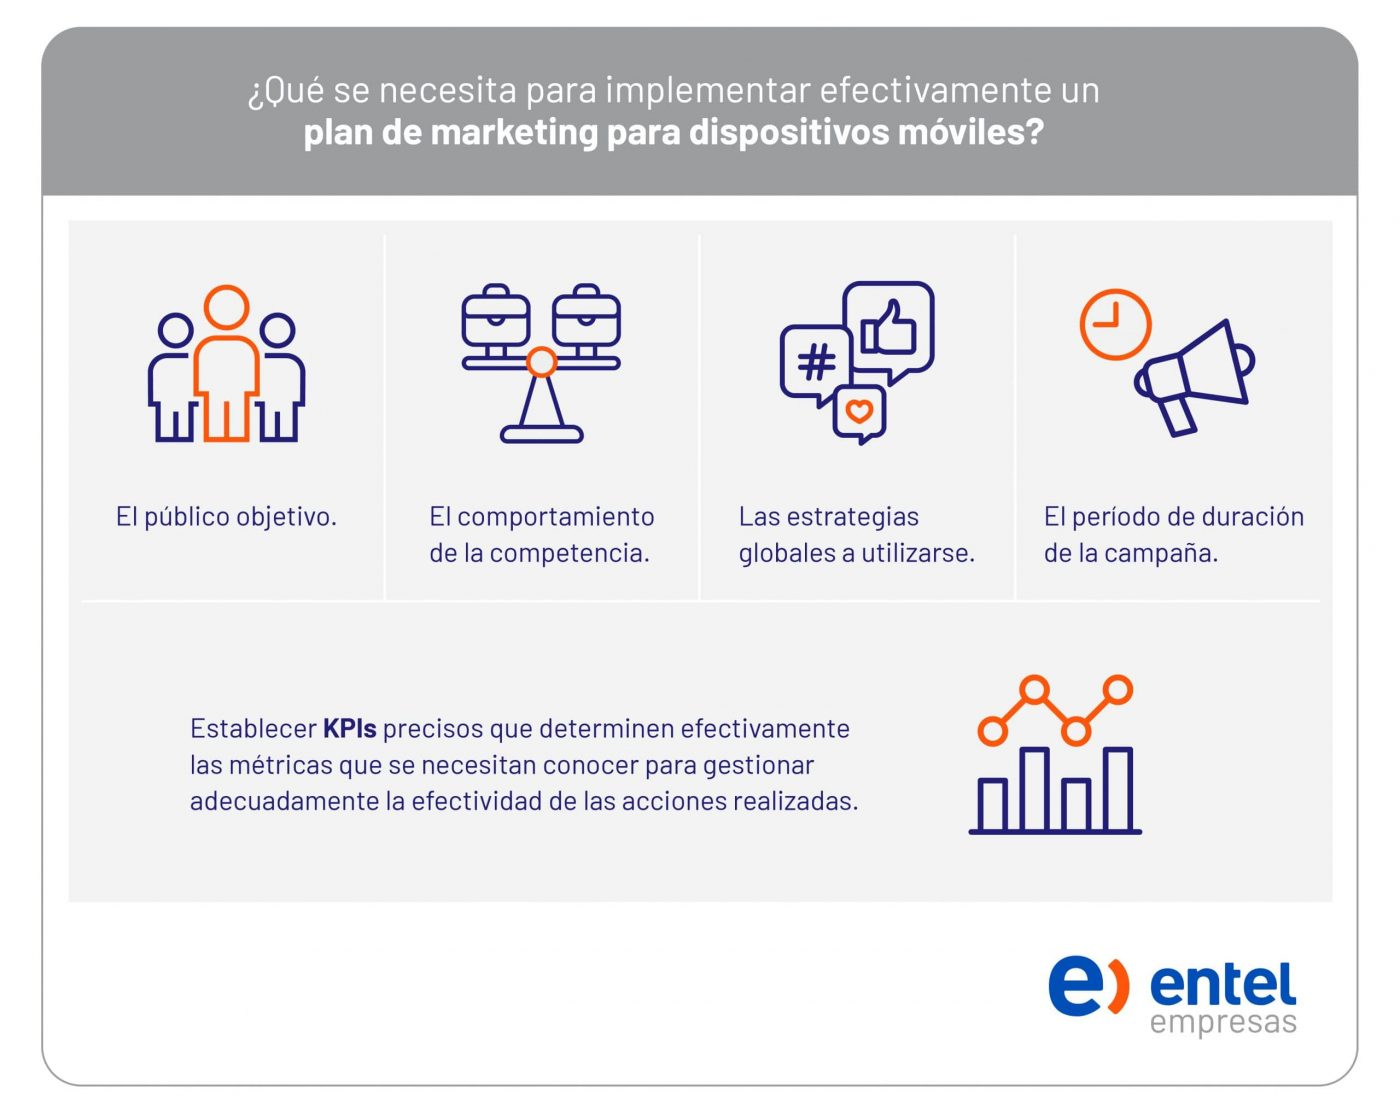 ¿Qué se necesita para implementar efectivamente un plan de marketing para dispositivos móviles?